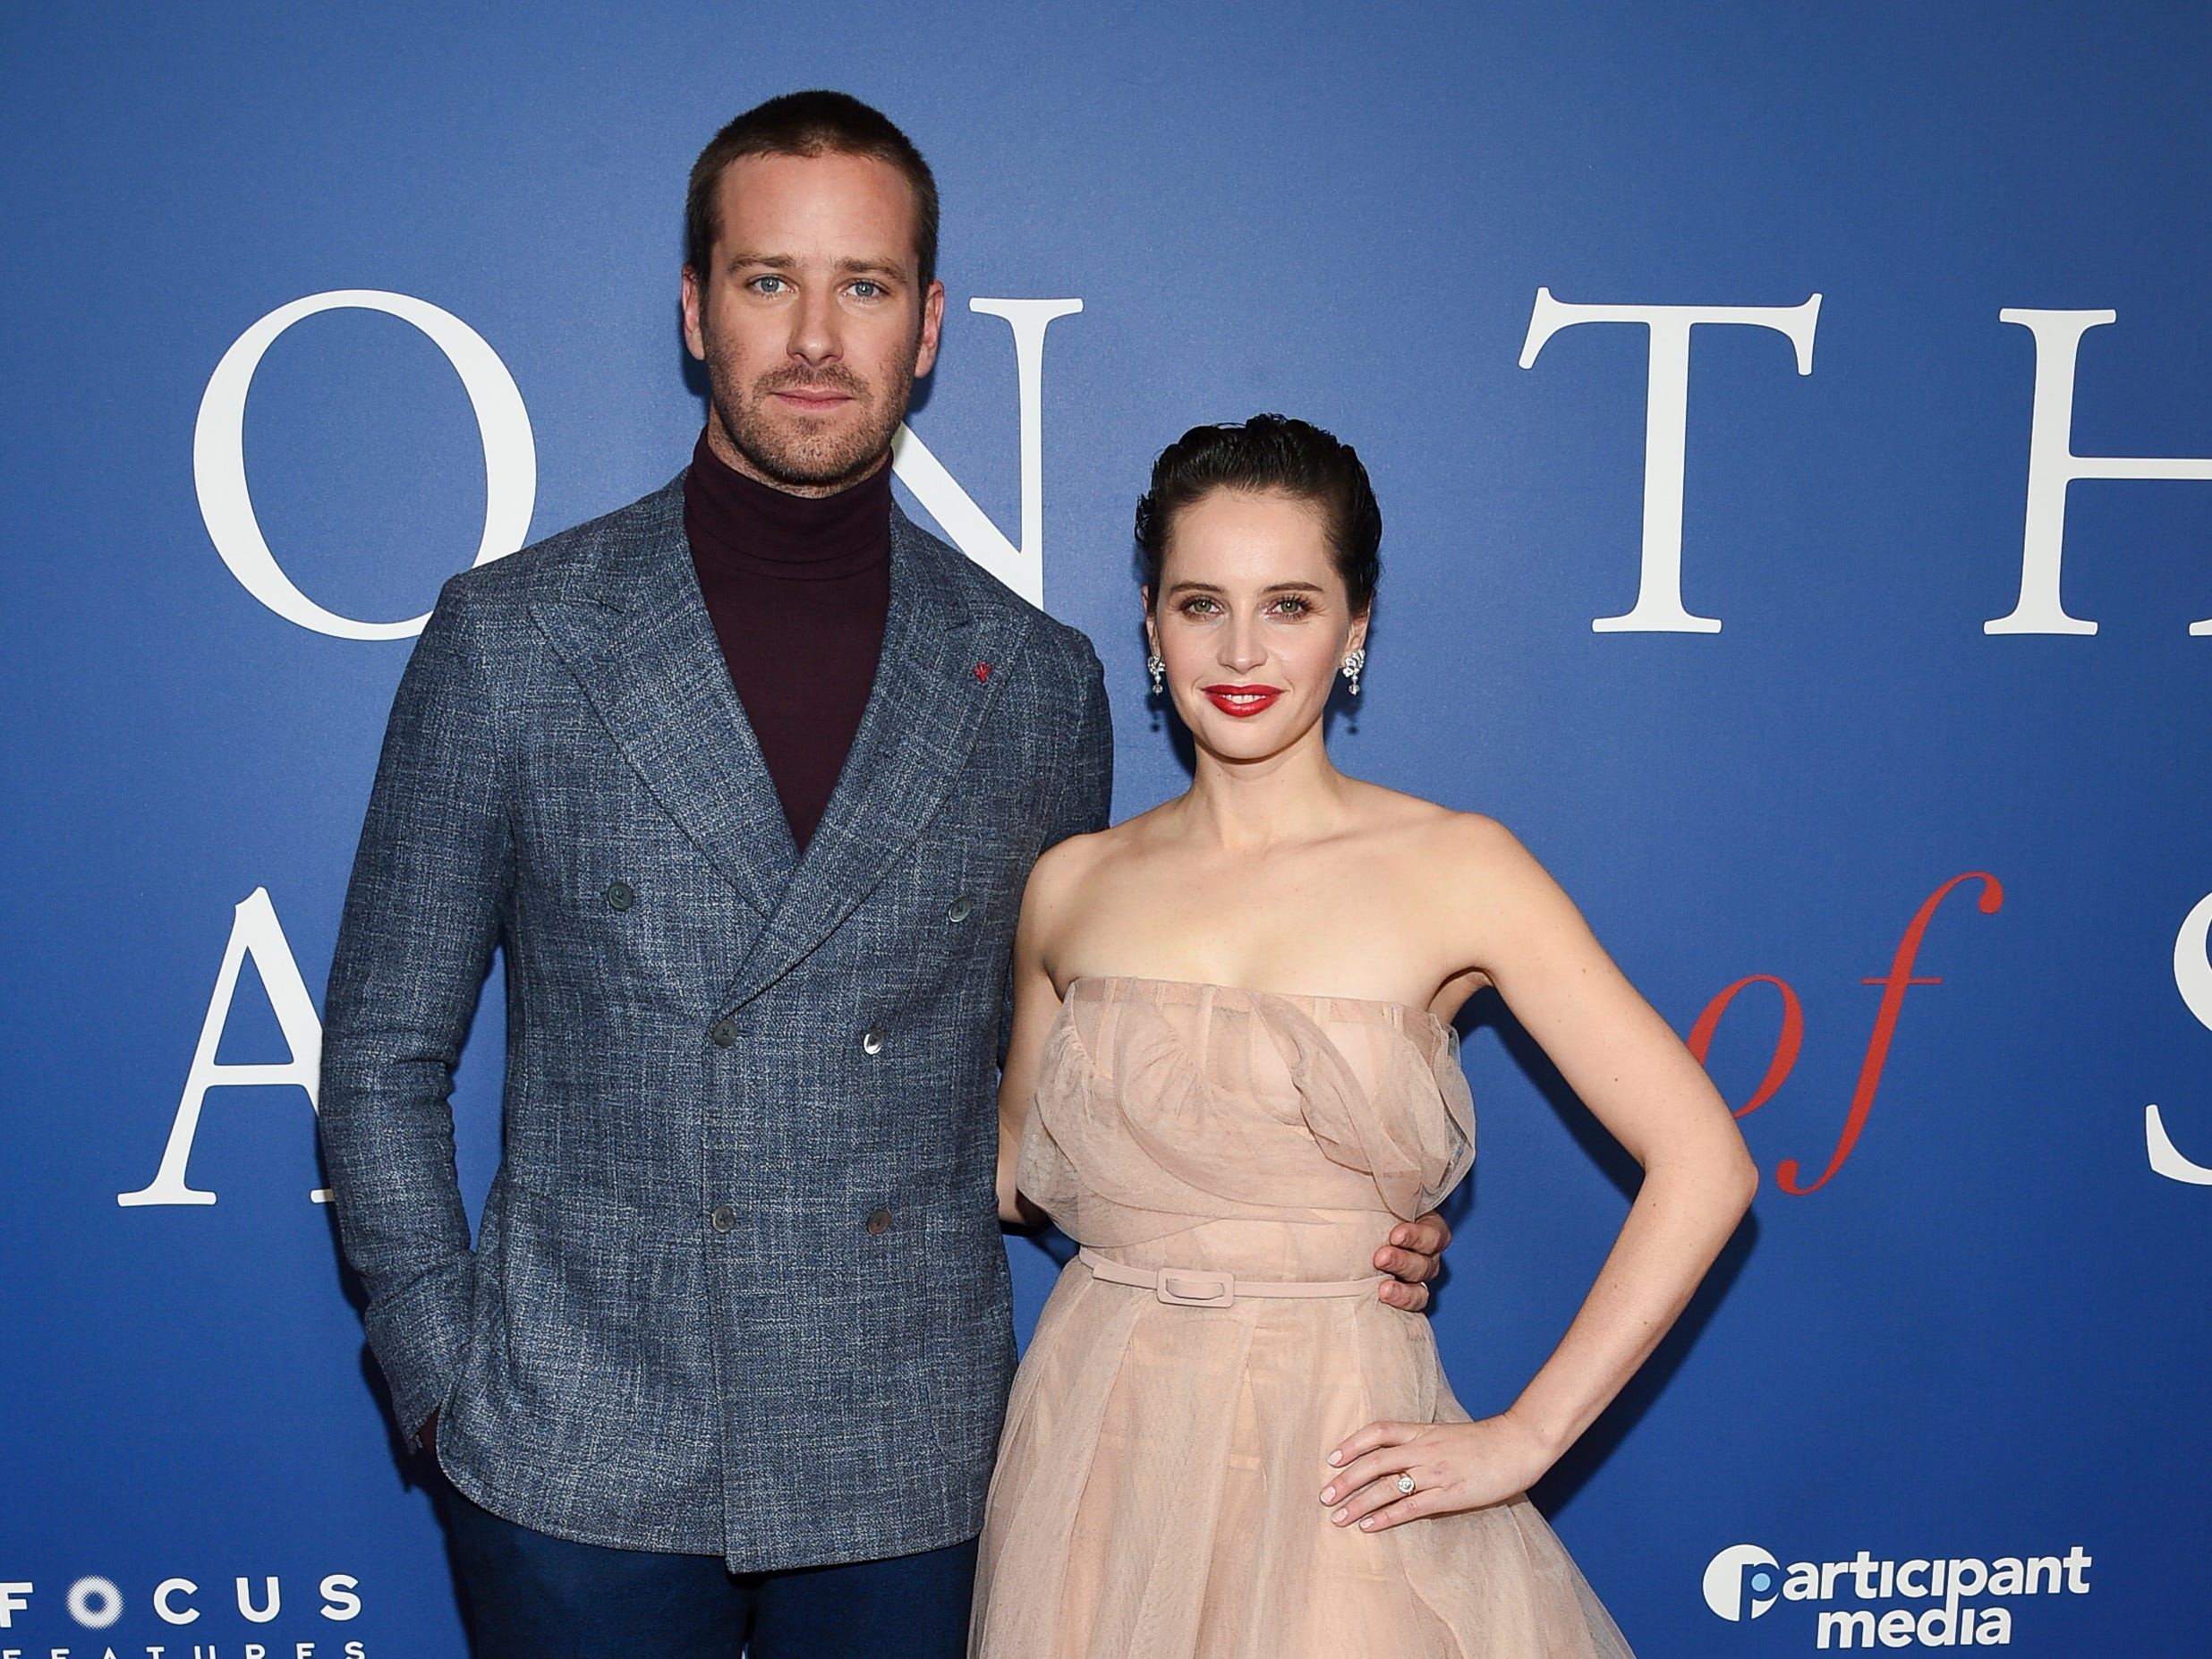 """Actors Armie Hammer, left, and Felicity Jones pose together at a special screening of """"On The Basis of Sex"""" at the Walter Reade Theater on Sunday, Dec. 16, 2018, in New York. (Photo by Evan Agostini/Invision/AP) ORG XMIT: NYEA0110"""